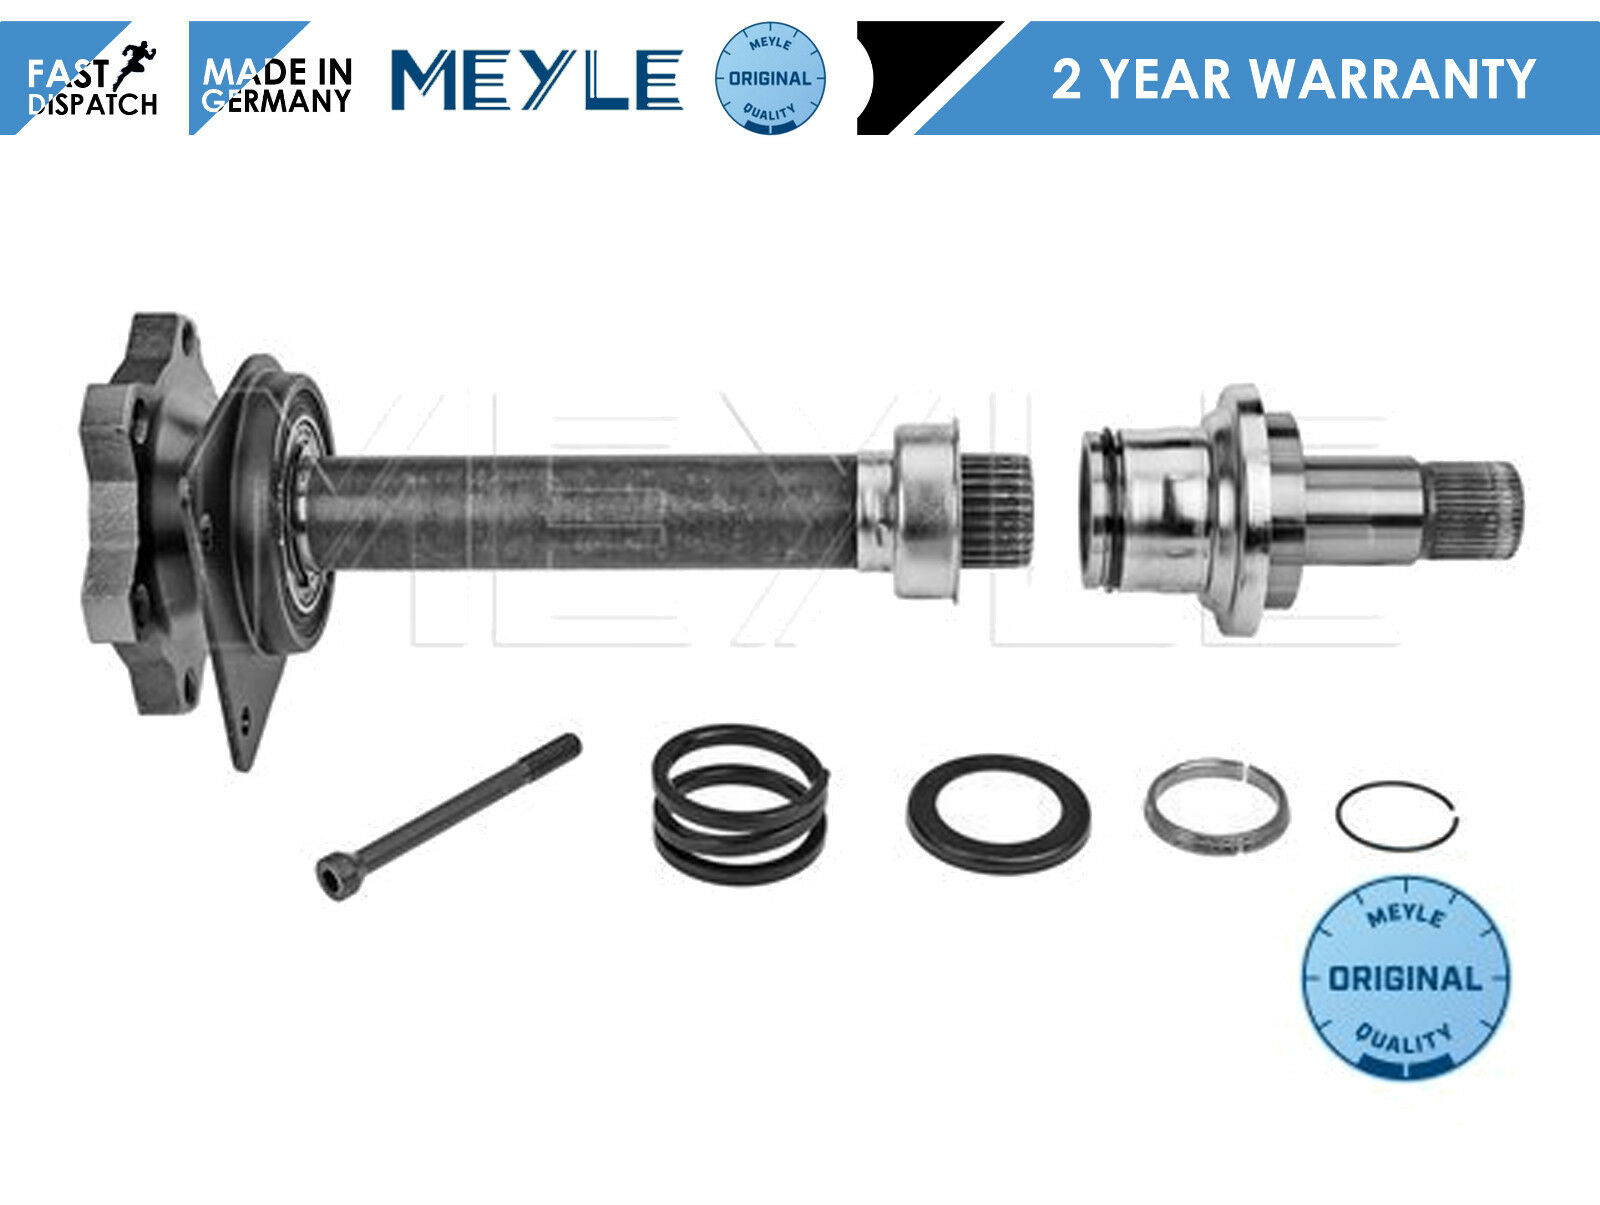 1x Drive shaft front right Shaft Flange MEYLE